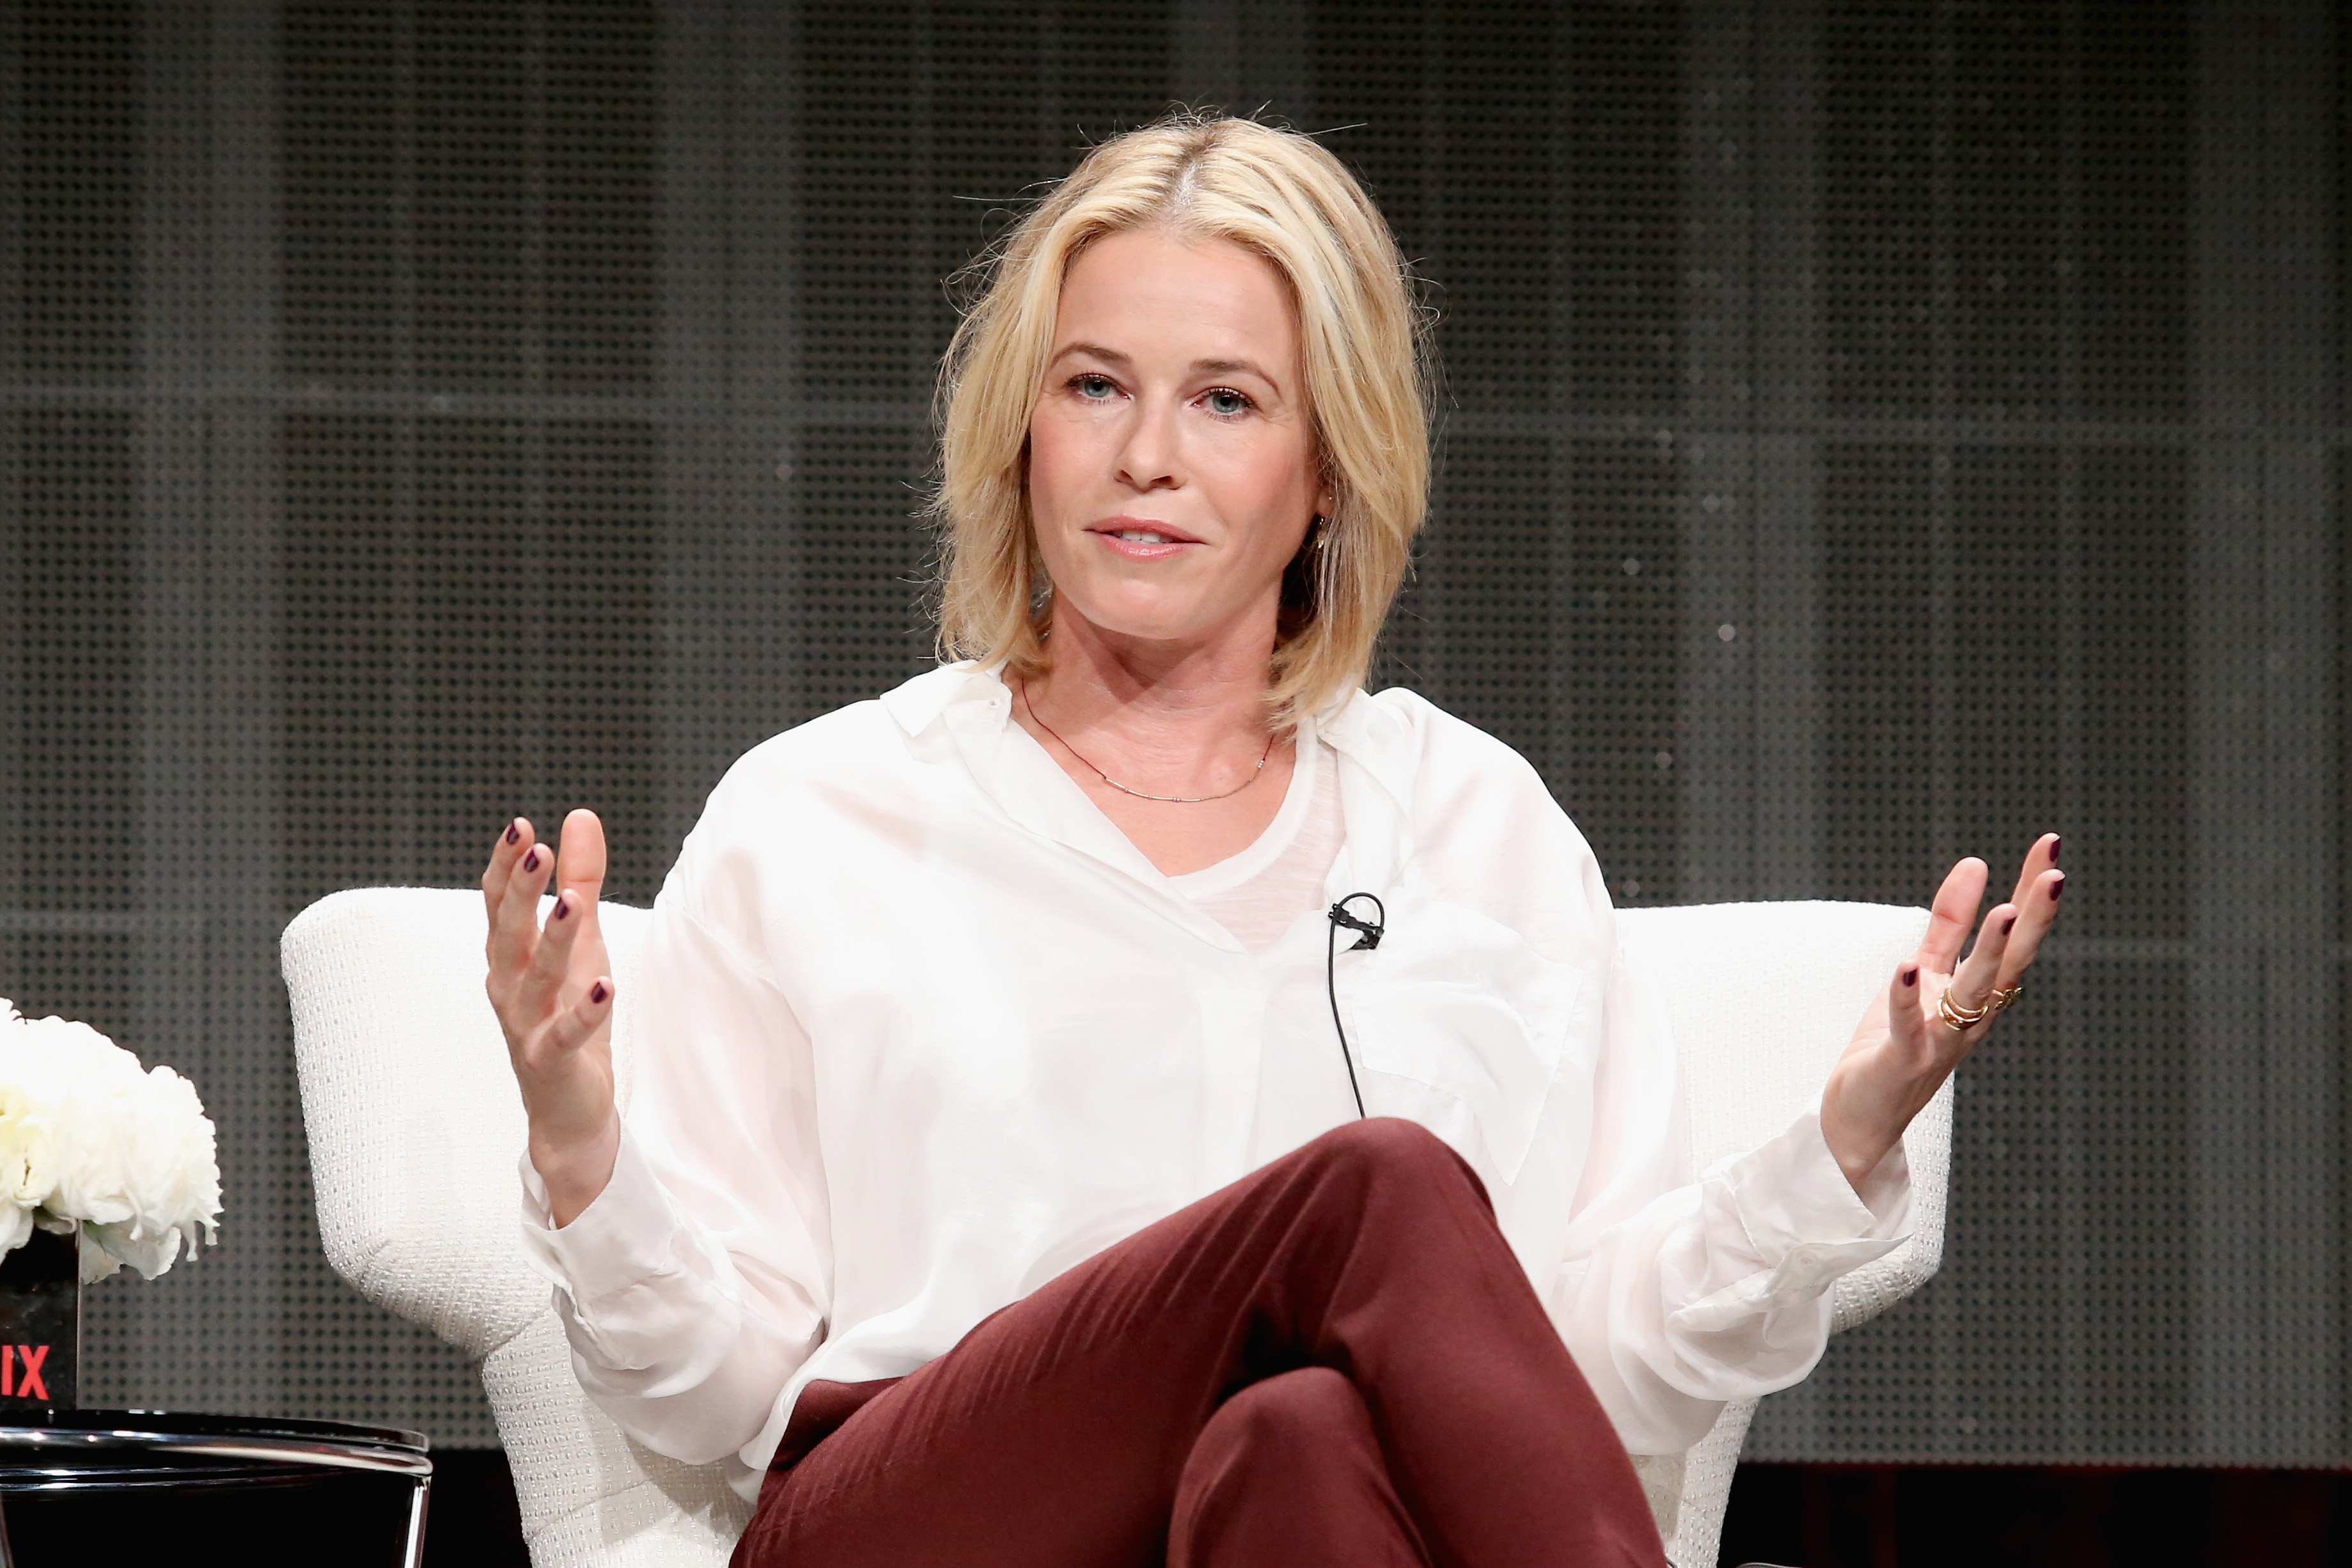 Chelsea Handler names flirty Justin Bieber as the worst celeb to interview